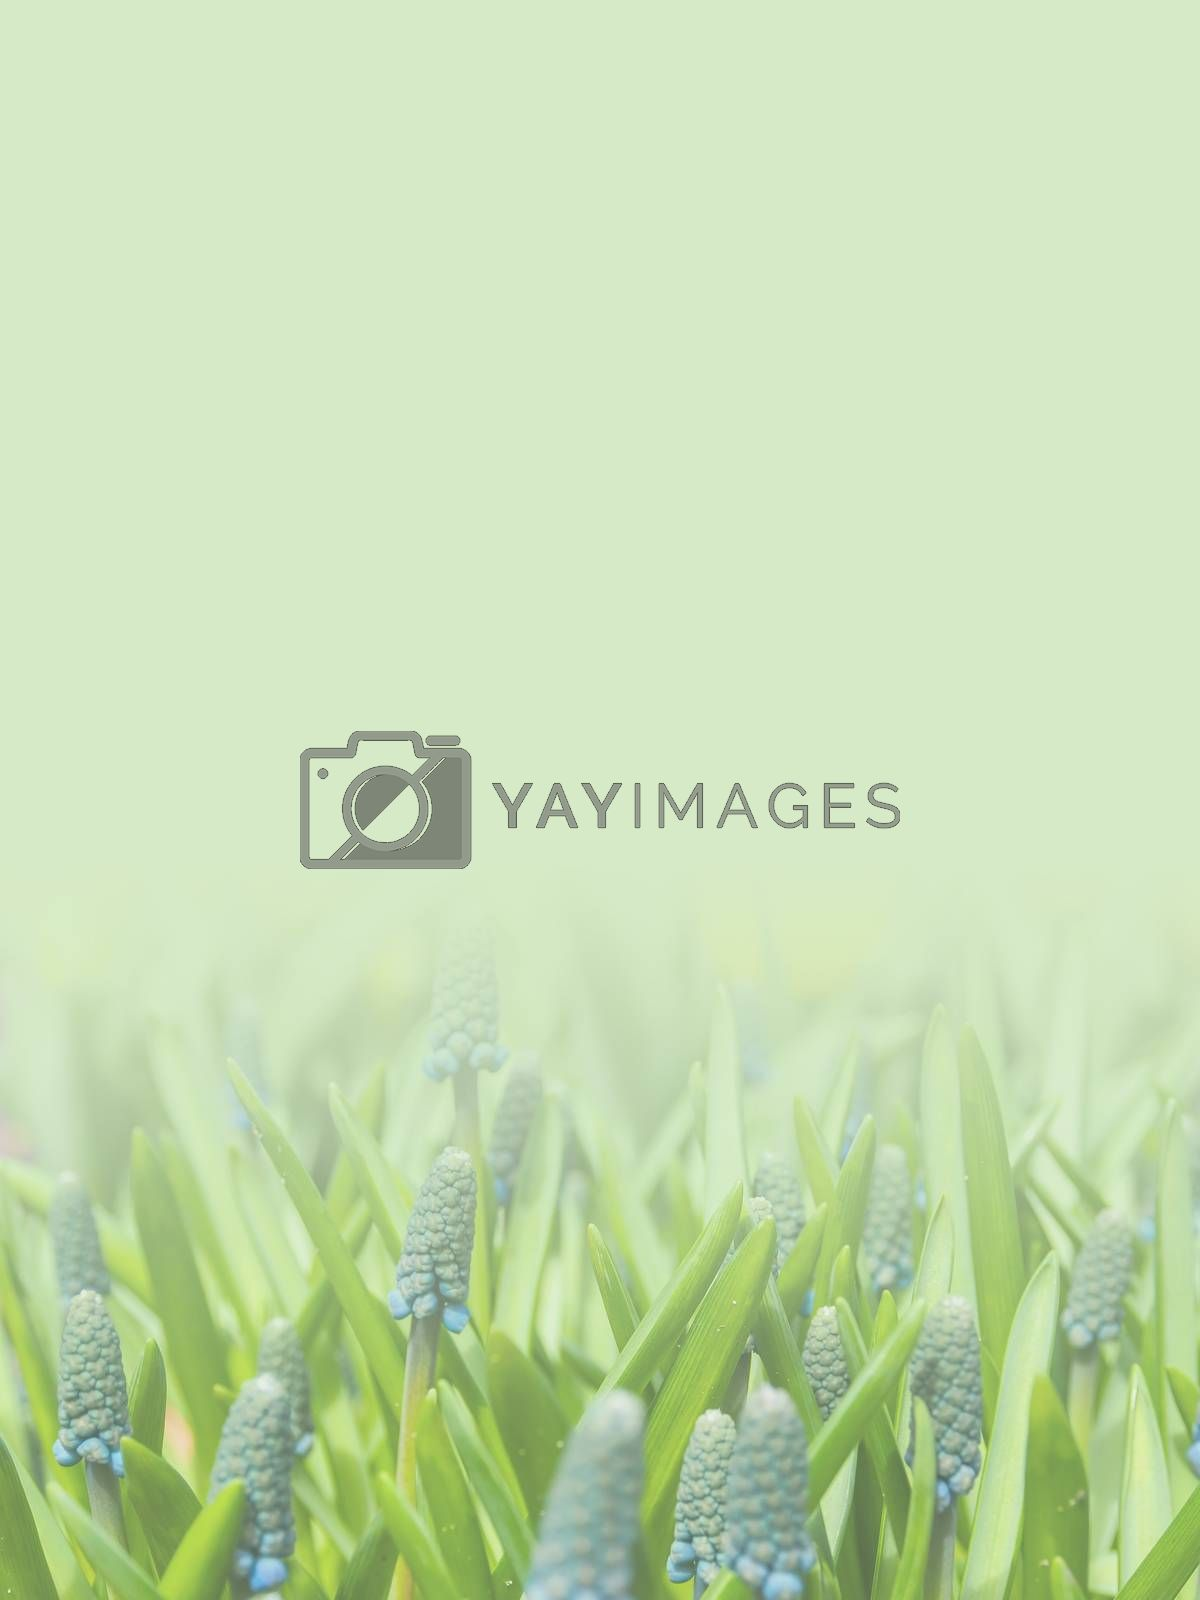 grape hyacinth flowers made as abstract flower background illustration.